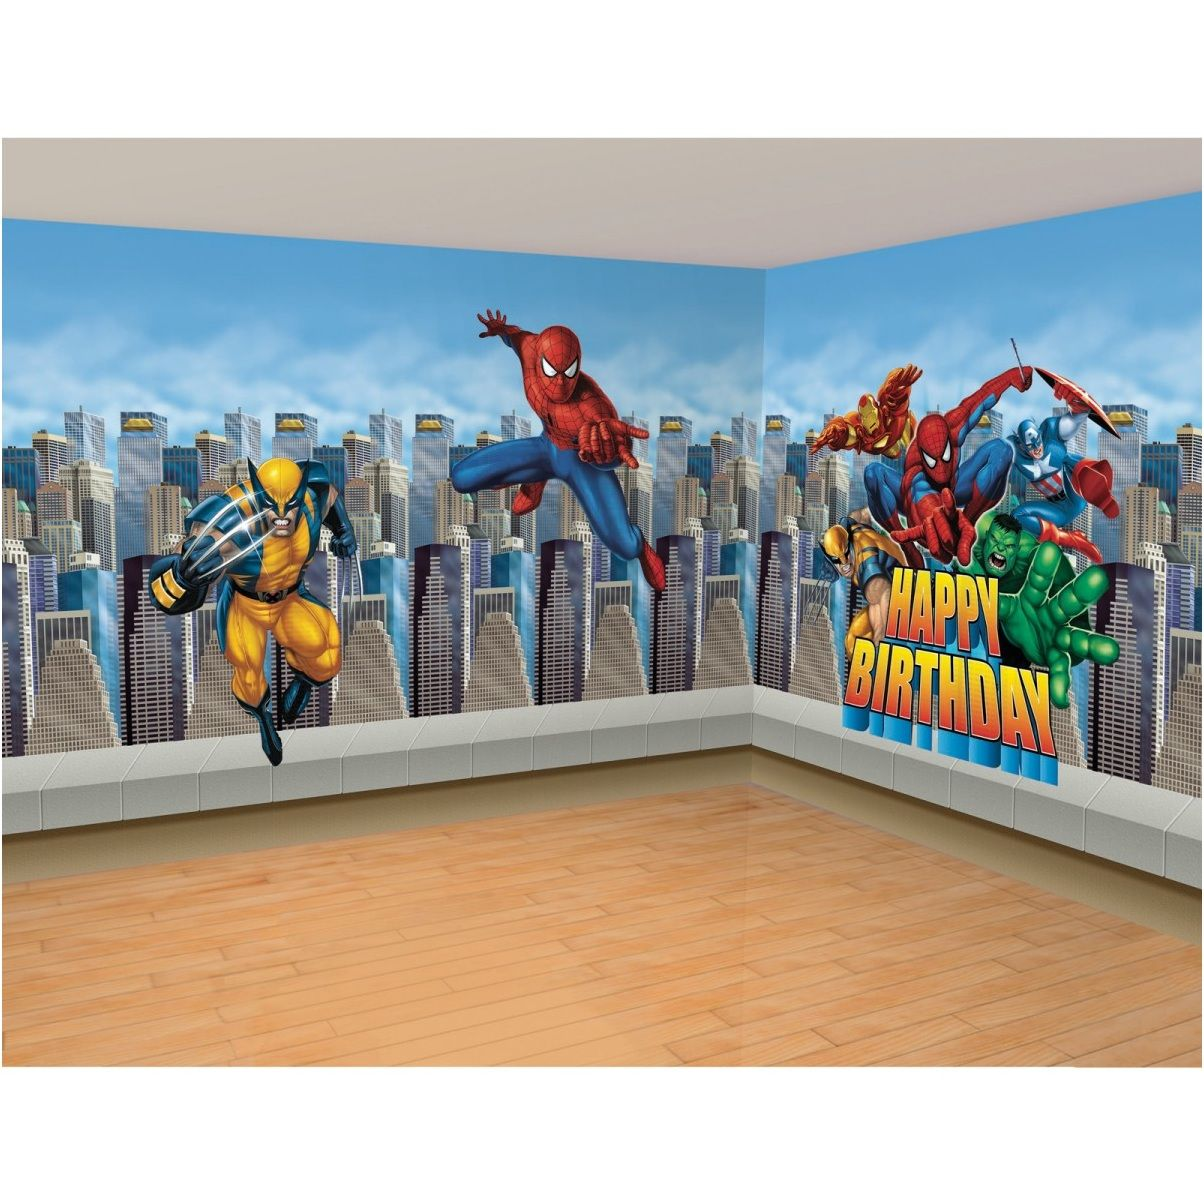 Marvel Themed Room Extraordinary Marvel Super Hero Bedroom Wall Decal Ideas  My Favs  Pinterest Design Inspiration